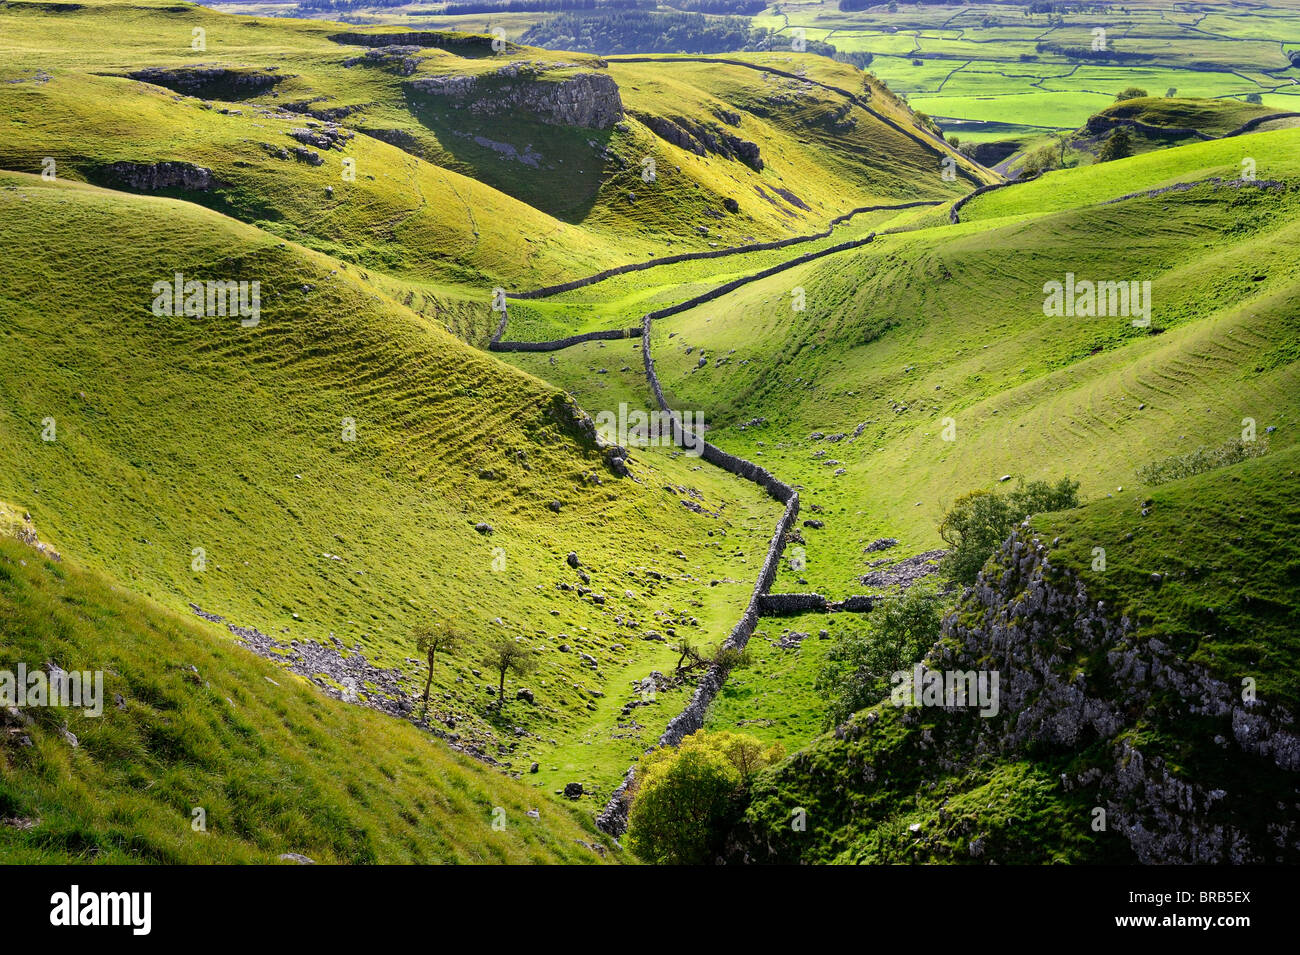 Limestone dale and crags at Conistone, Wharfdale, North Yorkshire, England - Stock Image